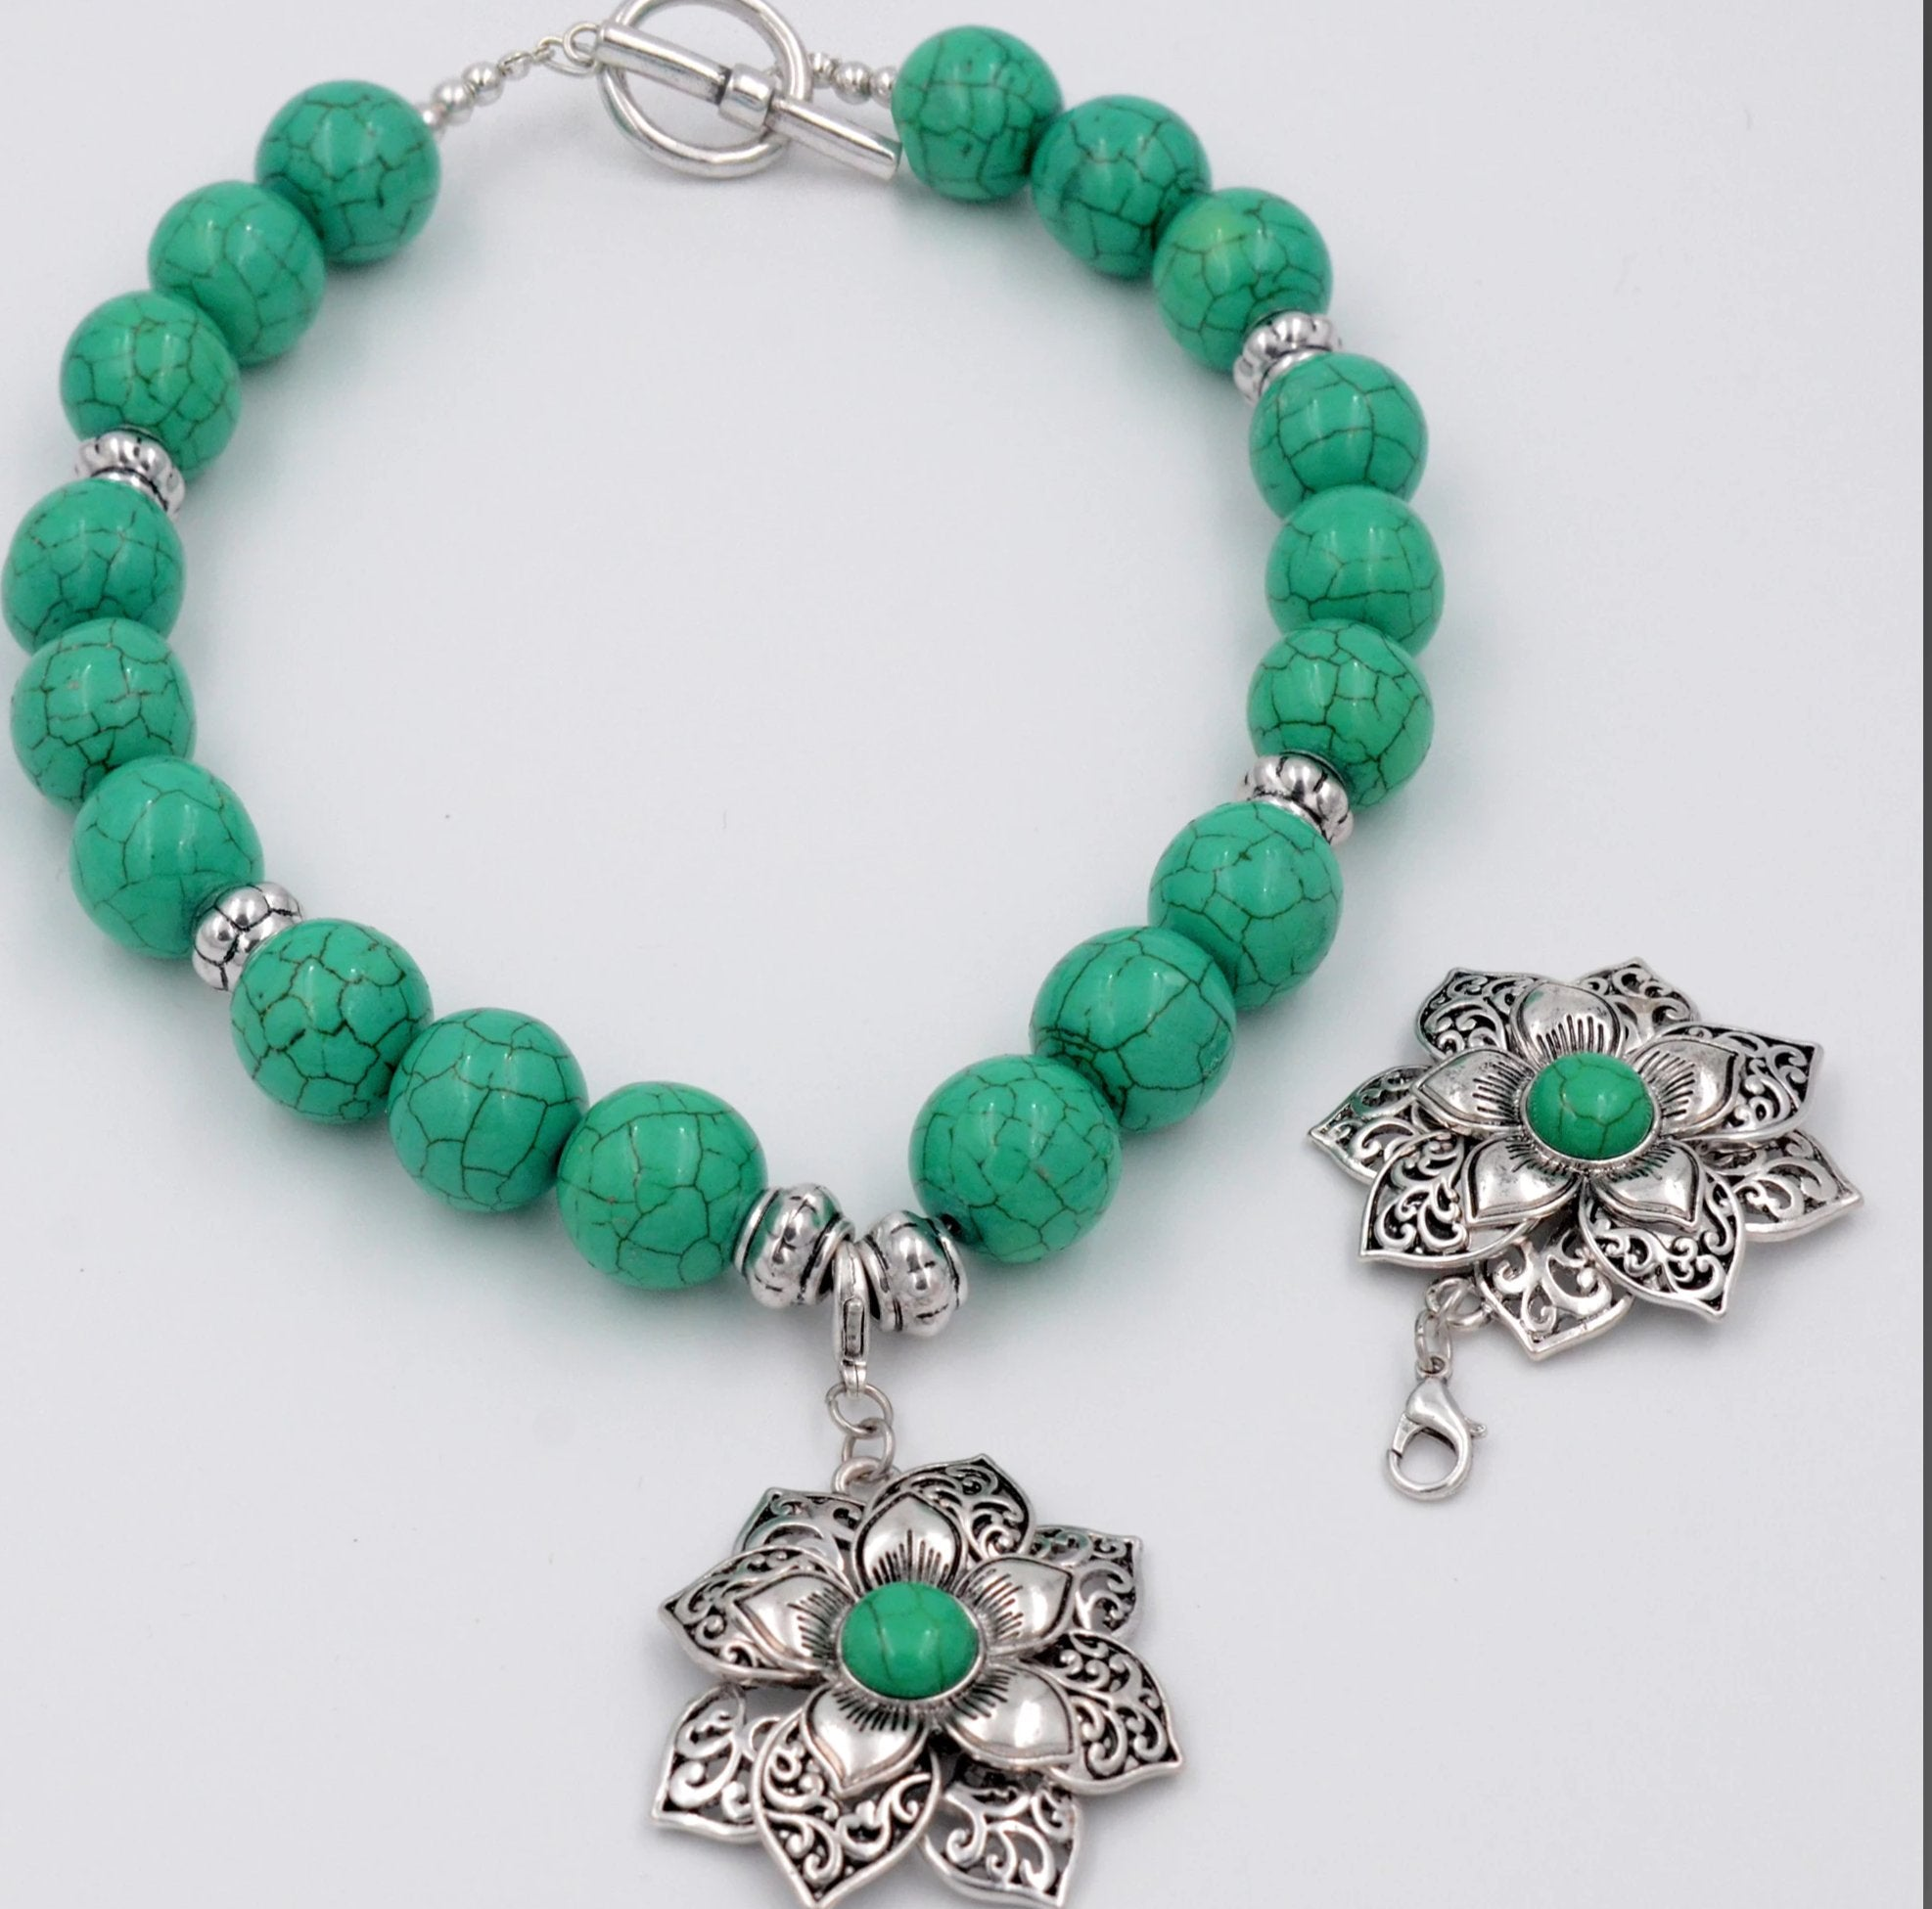 Antiqued Silver Flower necklace with green beads